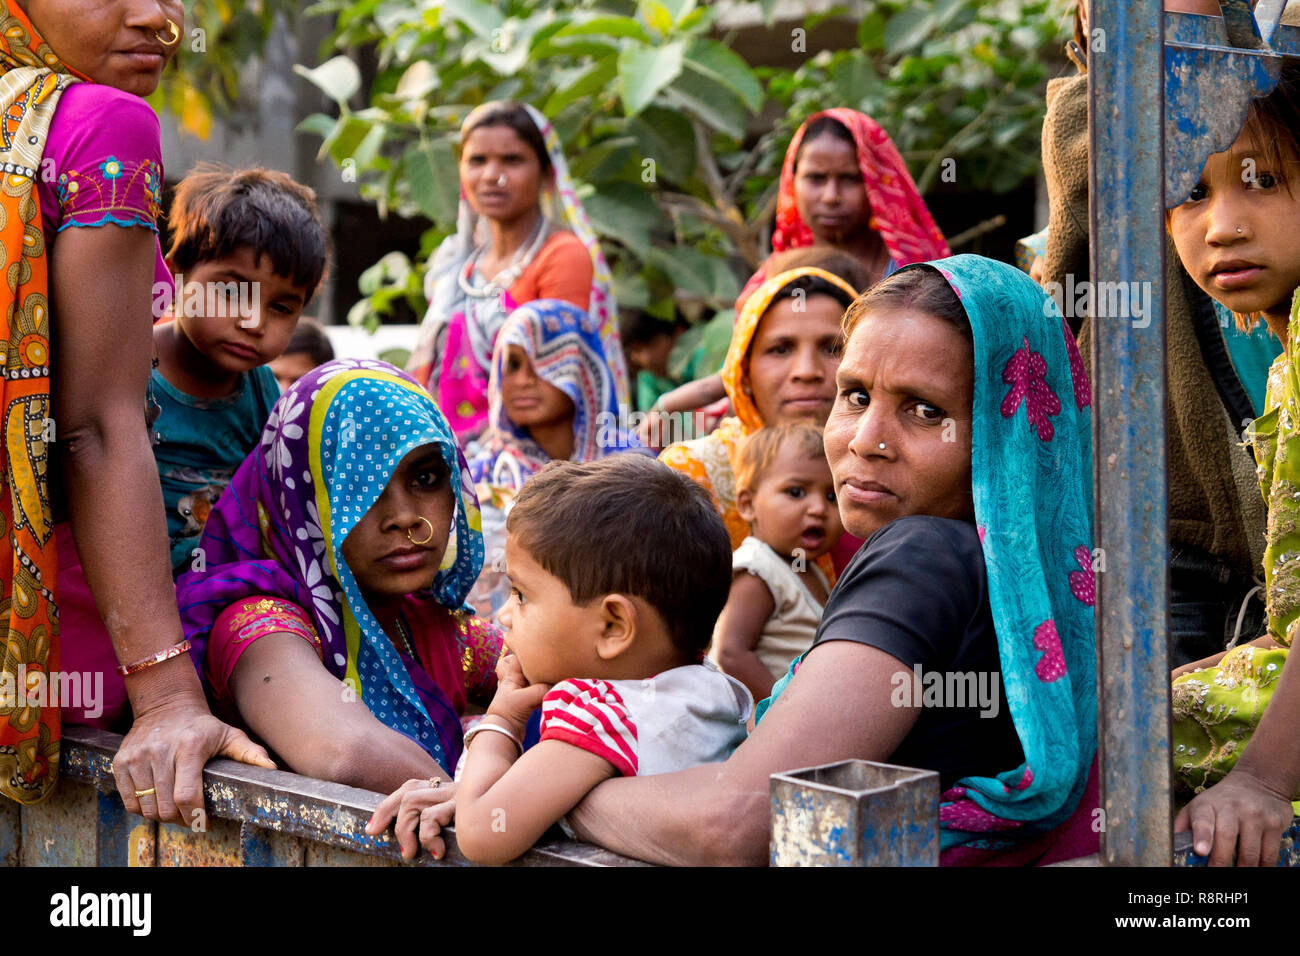 New delhi, India - 20 august 2018: children and women workers inside of truck after a day working at a construction site. Child labour is one of the m - Stock Image